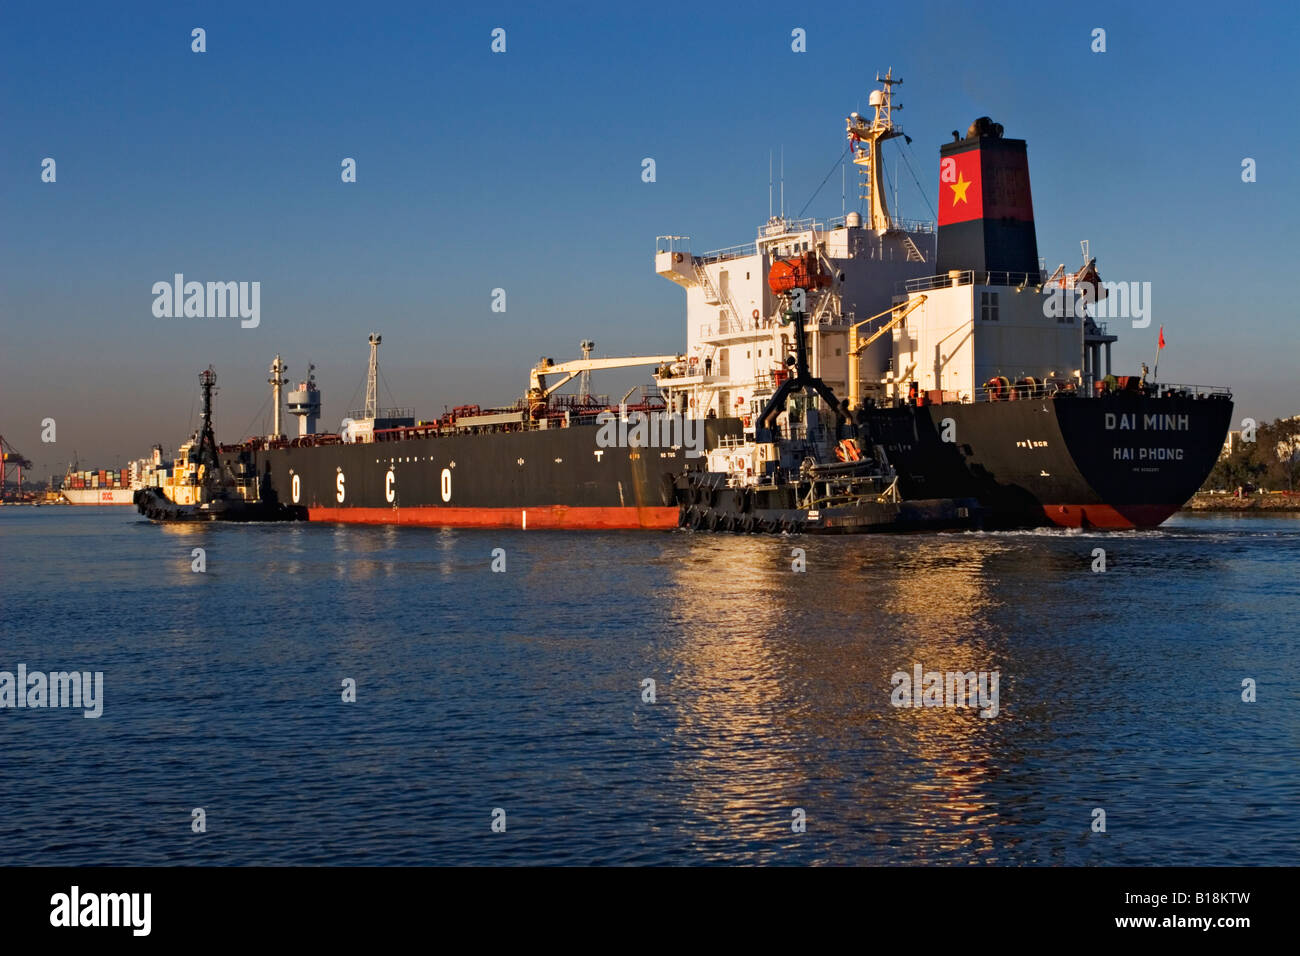 Shipping Fossil Fuels Stock Photos Amp Shipping Fossil Fuels